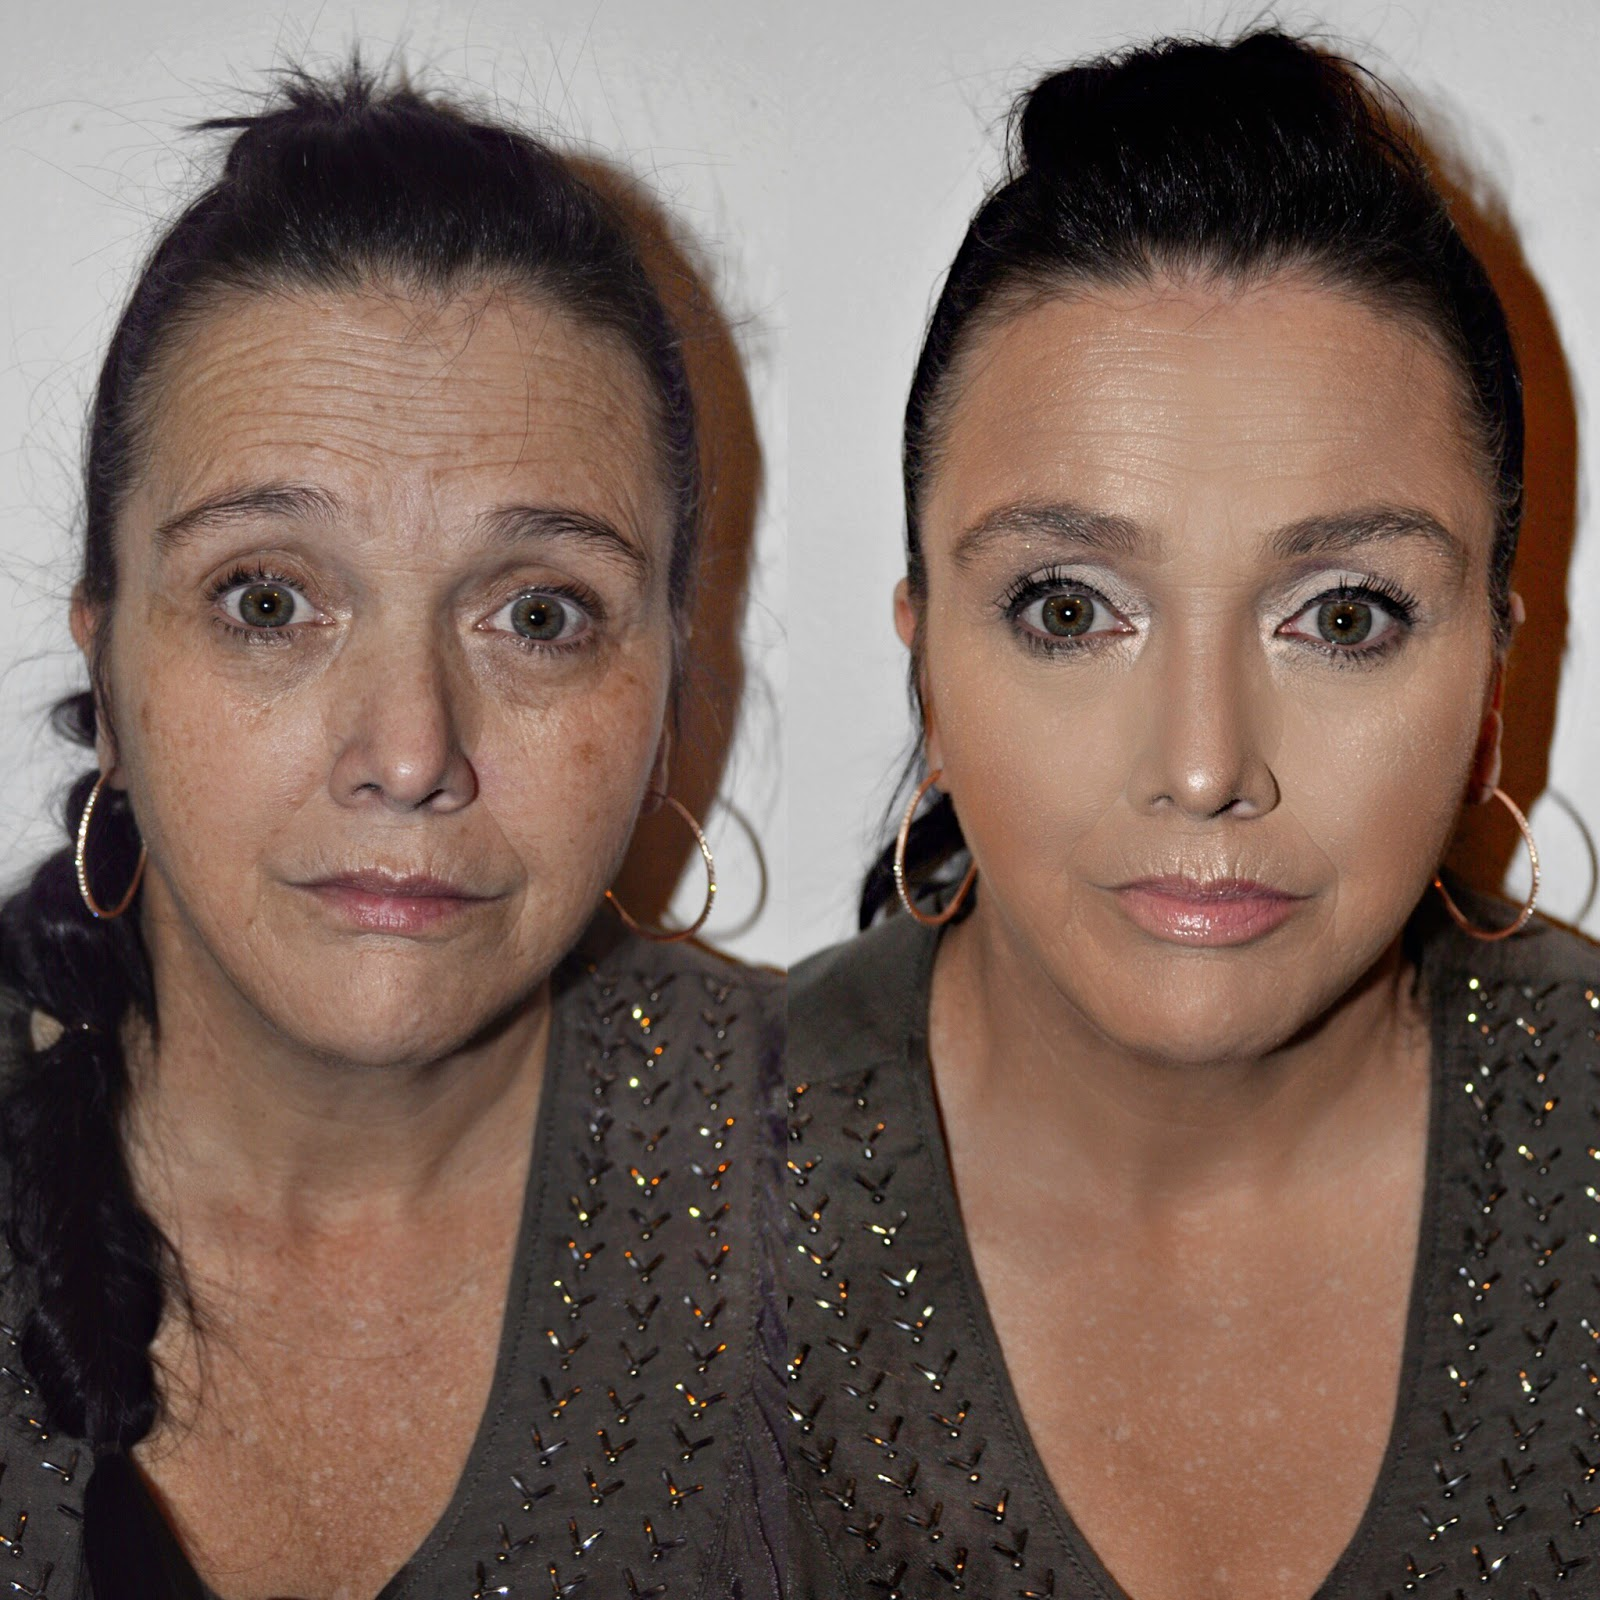 Latin make up for the mature skin tit nymphs rough